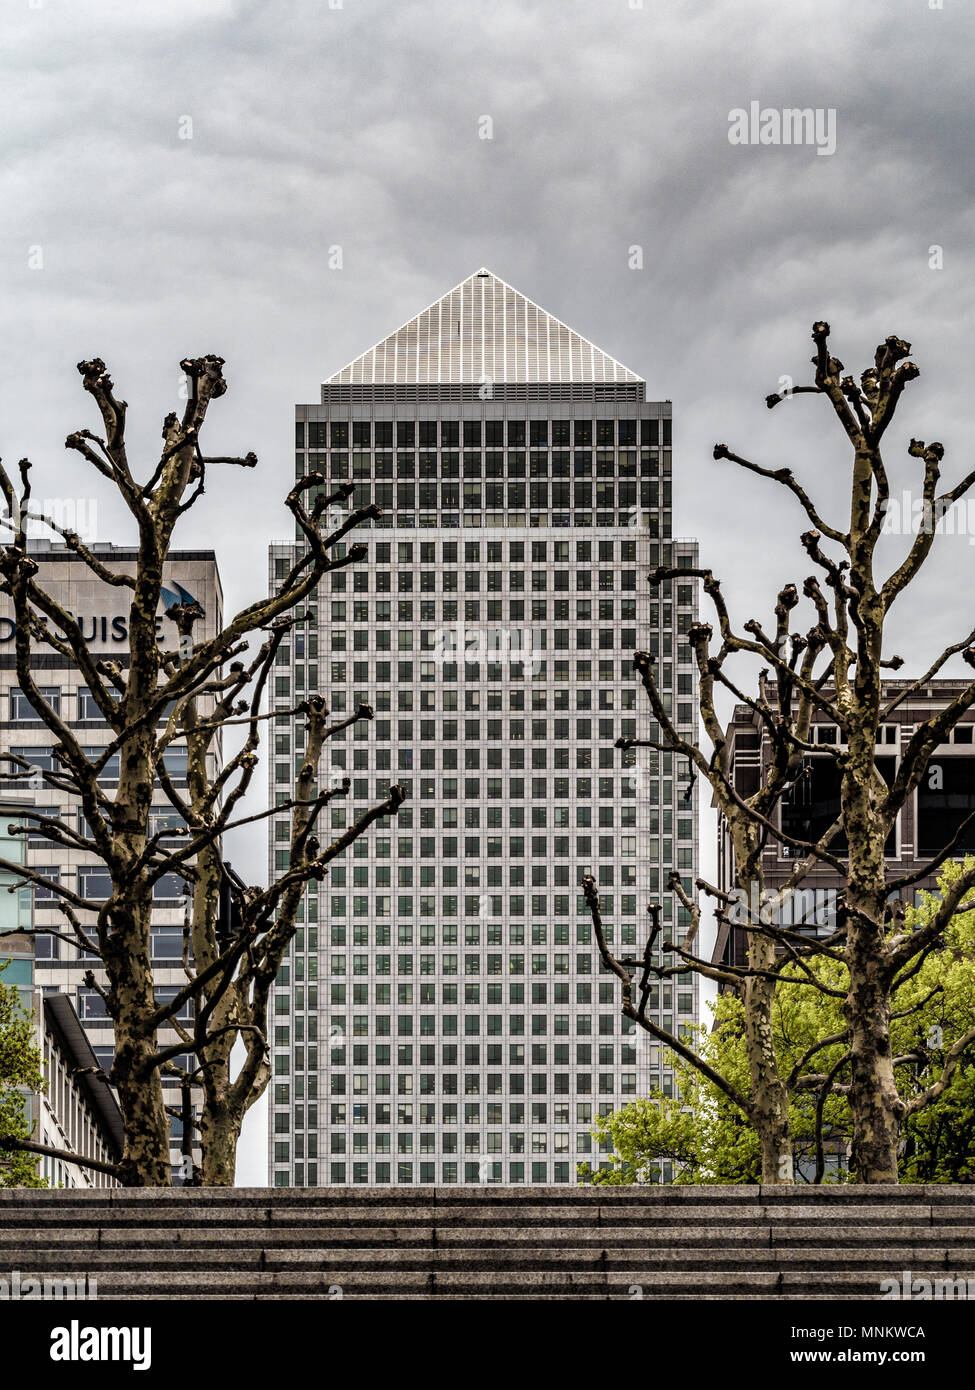 One Canada Square, (Canary Wharf Tower) a skyscraper in Canary Wharf, London. 770 feet (235 m) tall with 50 storeys. Designed by Cesar Pelli, Adamson  - Stock Image